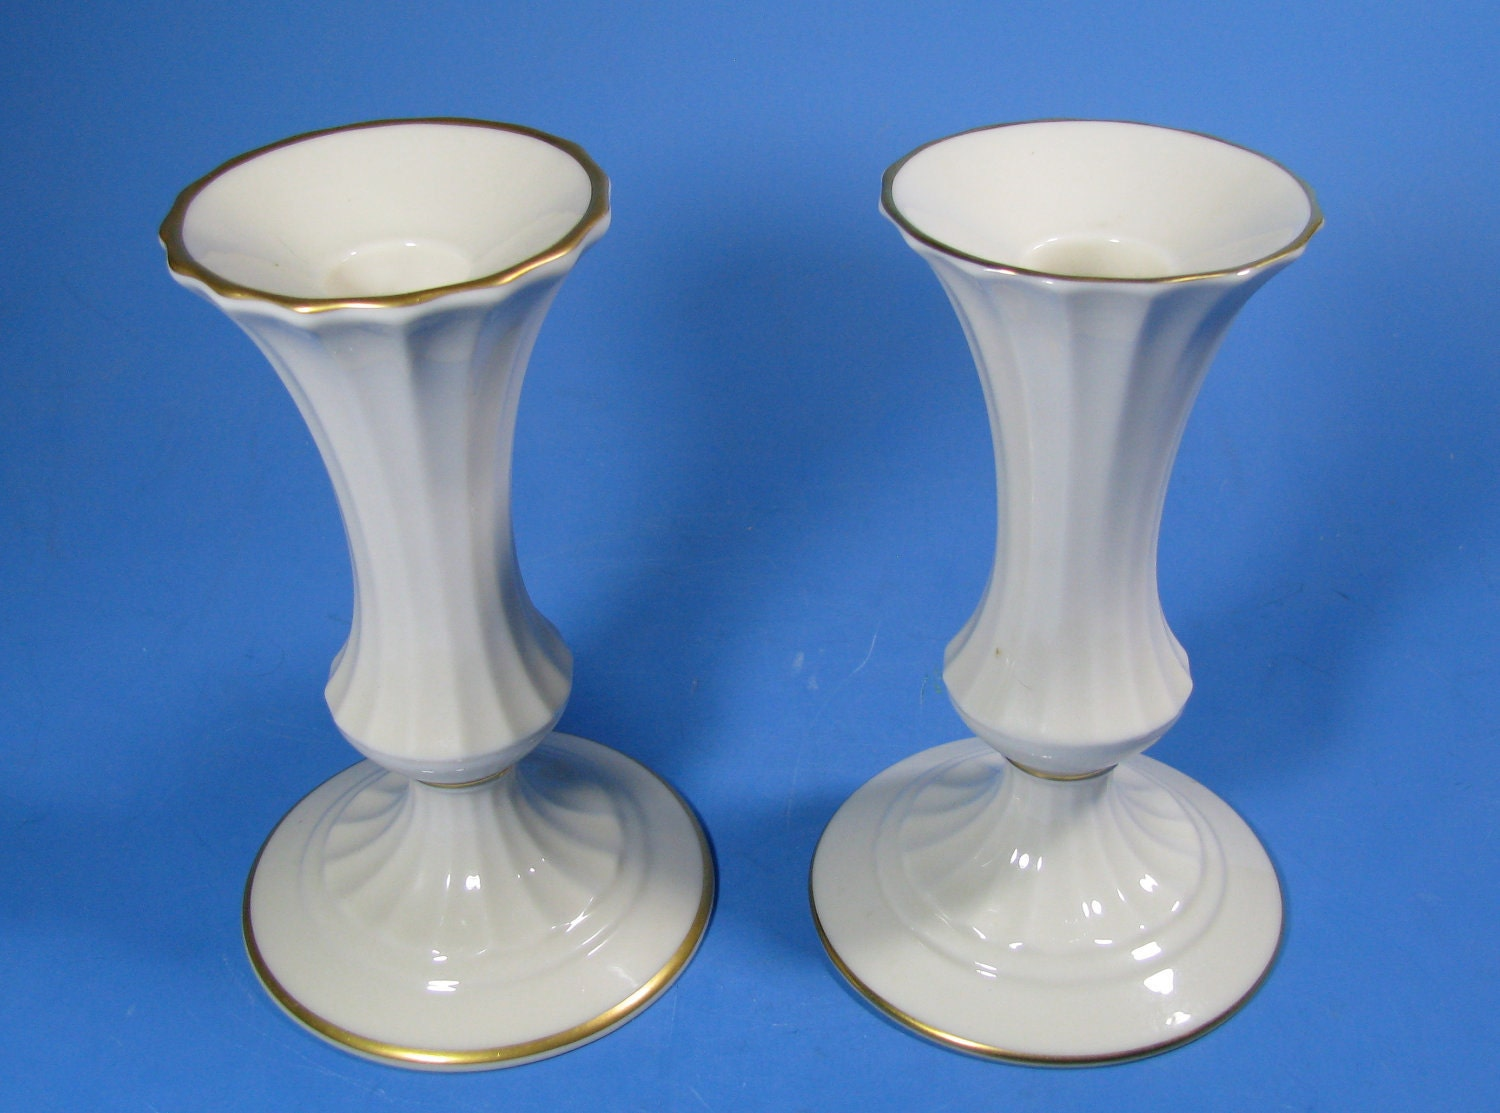 Porcelain ivory lenox candle holders pair perfect